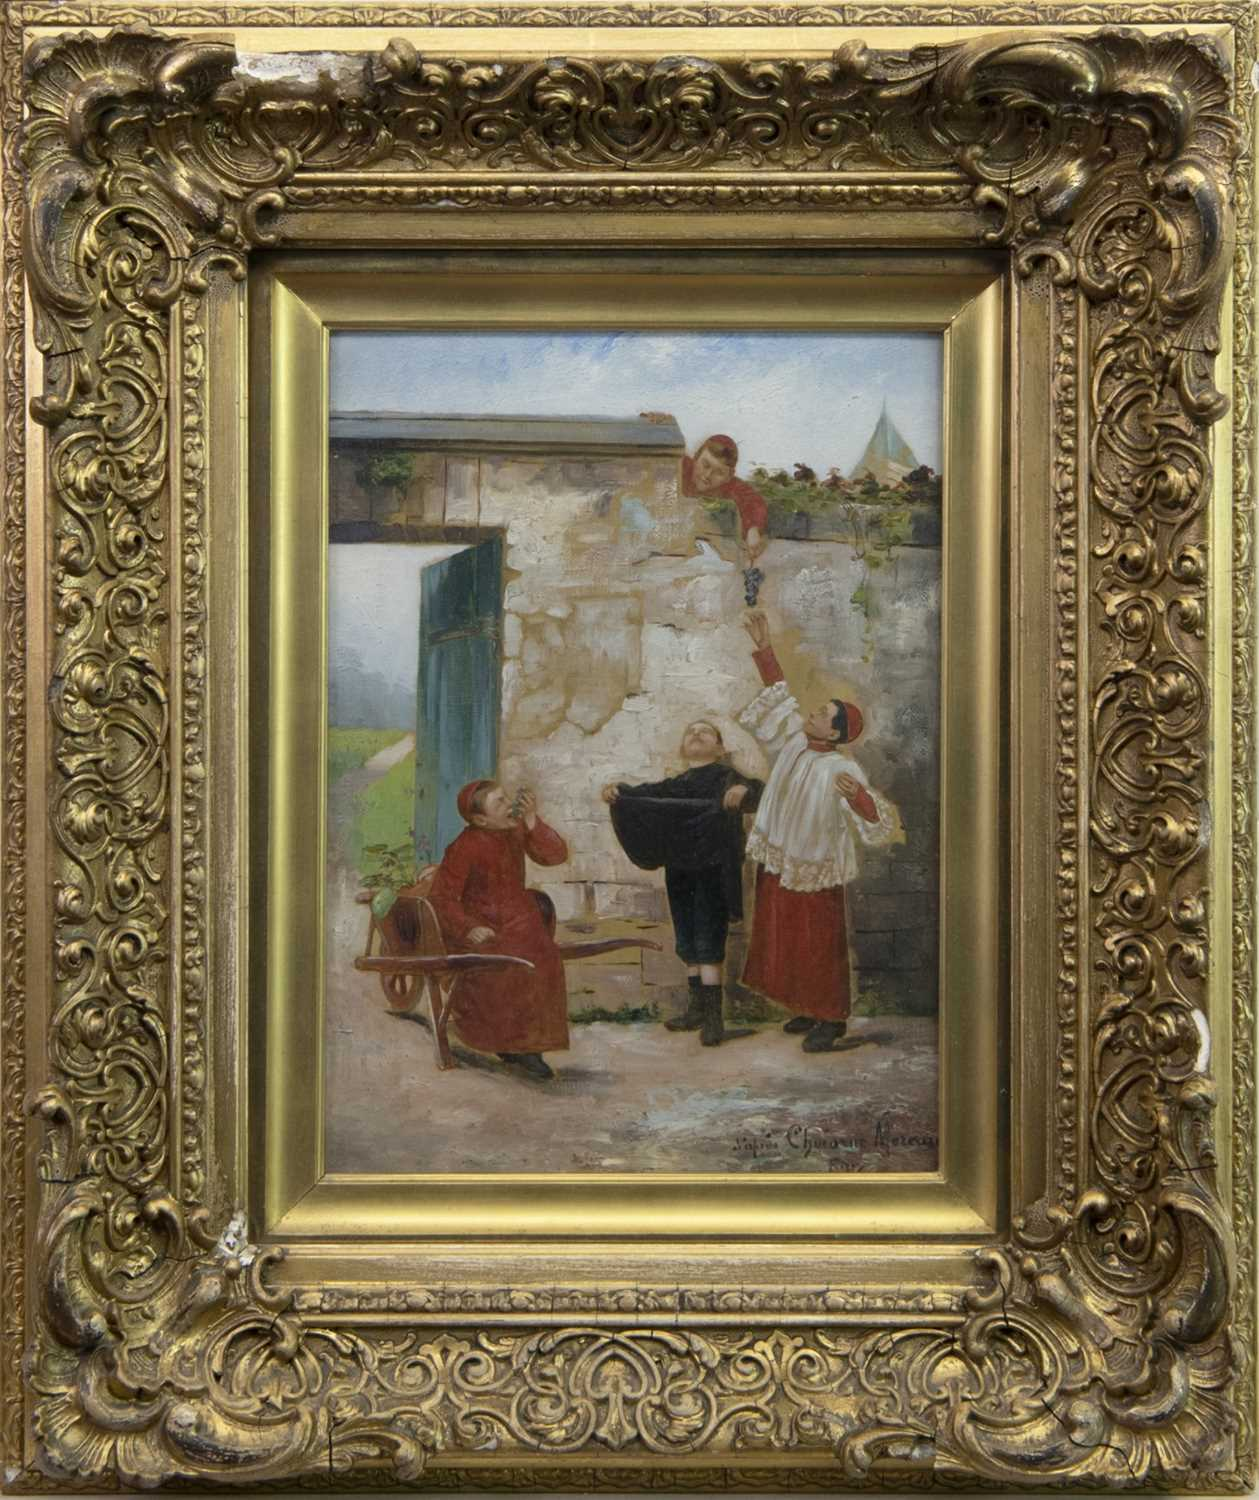 Lot 51-GRAPES, AN OIL BY PAUL CHARLES CHOCARNE MOREAU